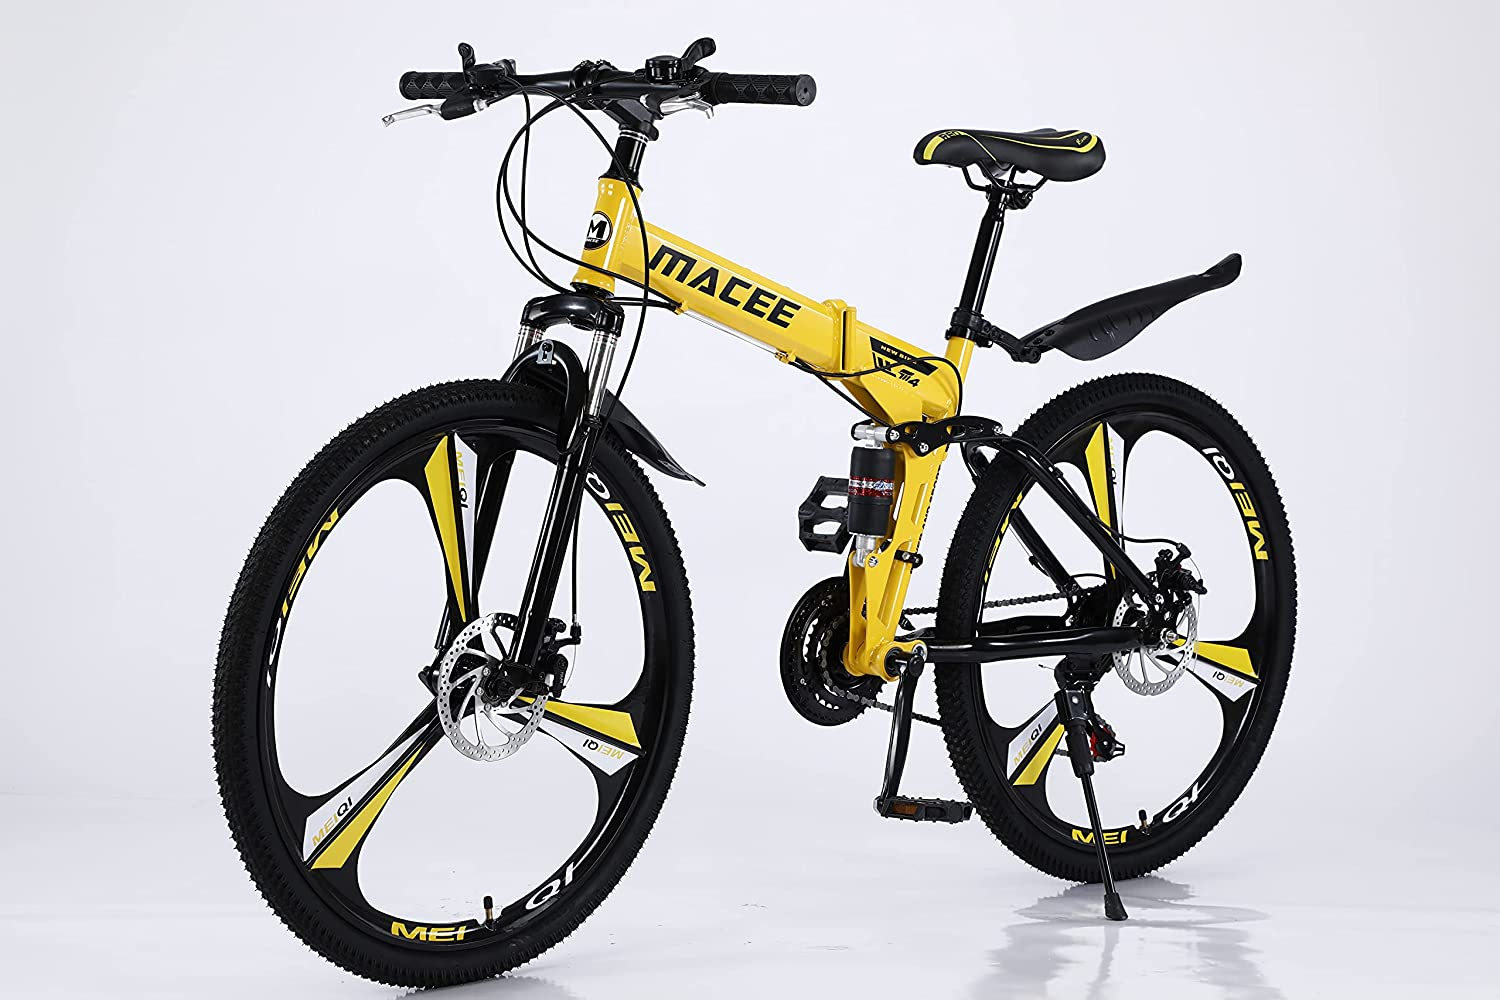 VICXYY Price reduction Mountian Bike for Adults 24 - Folding Bicicle Plegab Sales results No. 1